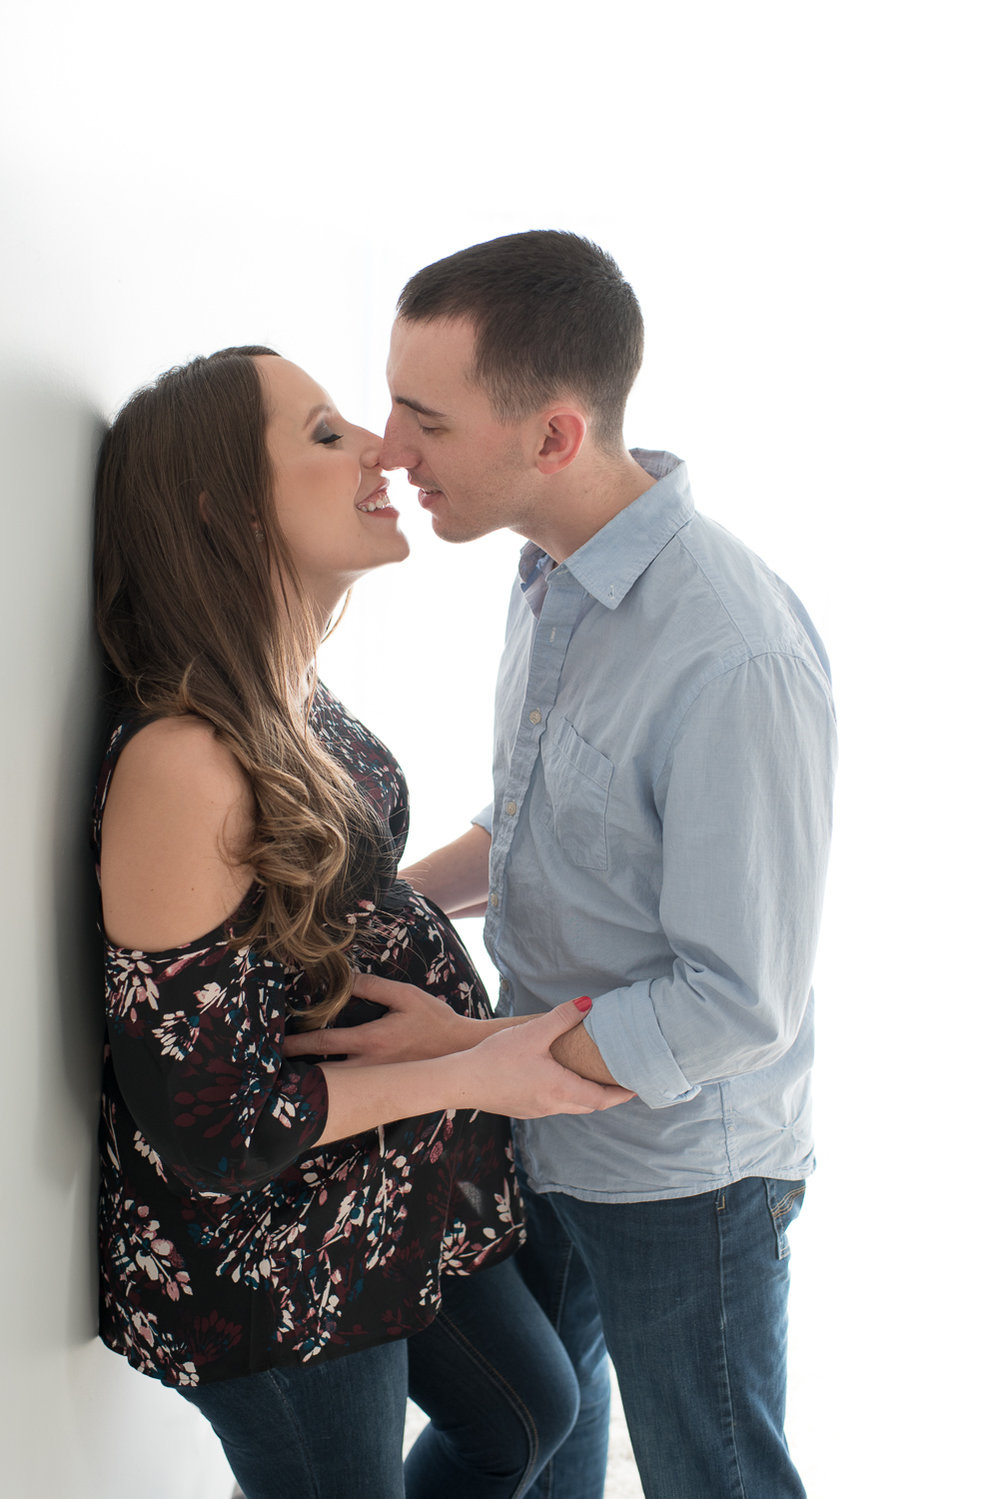 Candid and professional maternity photographer | D. Phillips